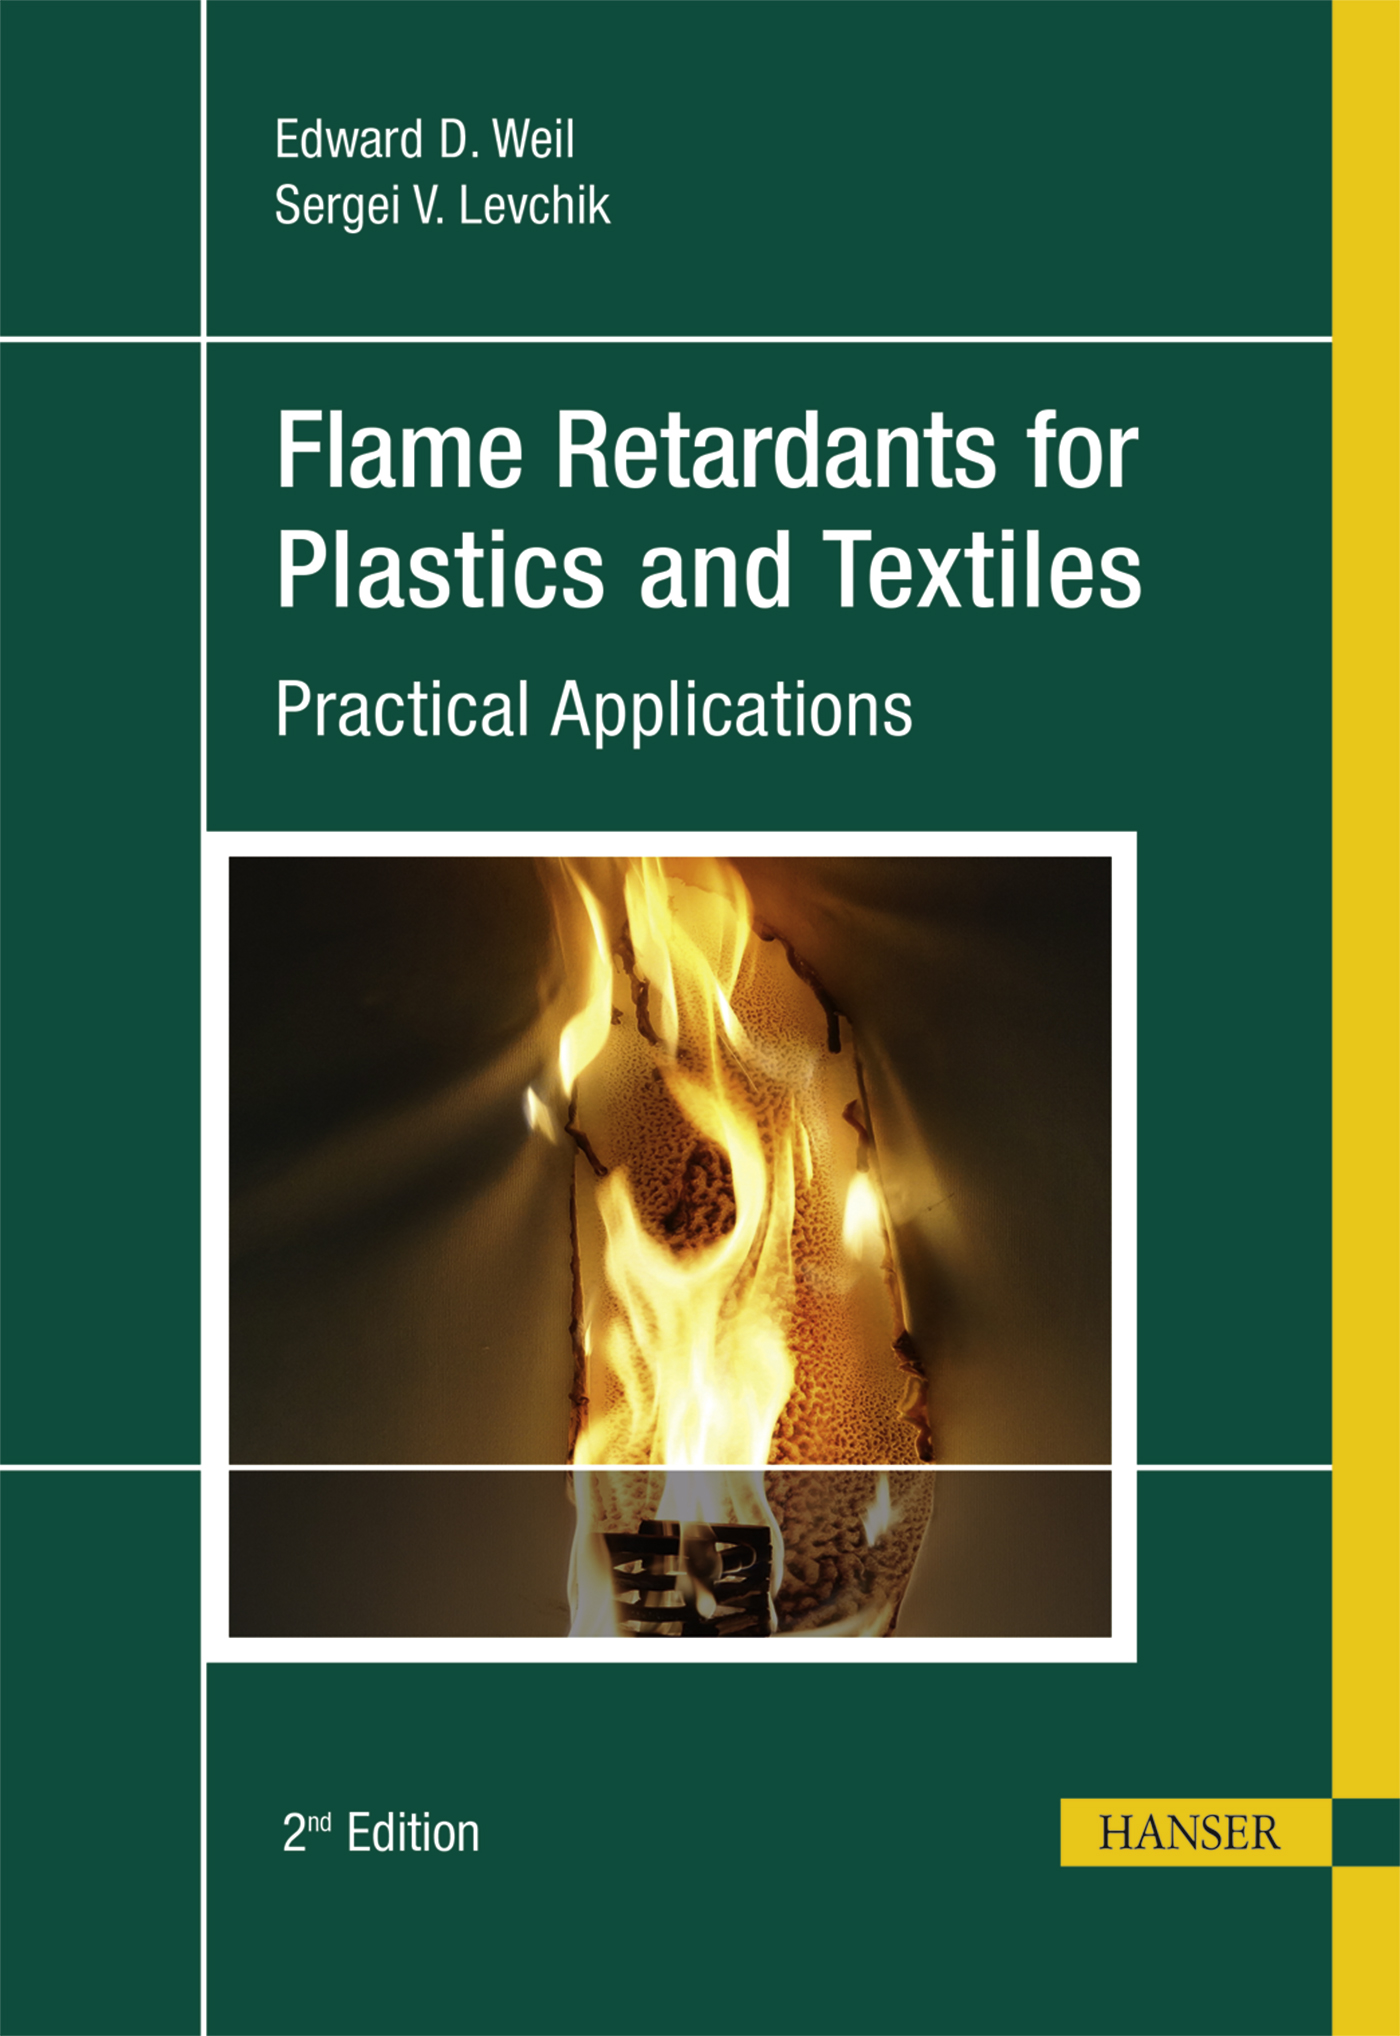 Weil, Levchik, Flame Retardants for Plastics and Textiles, 978-1-56990-578-4